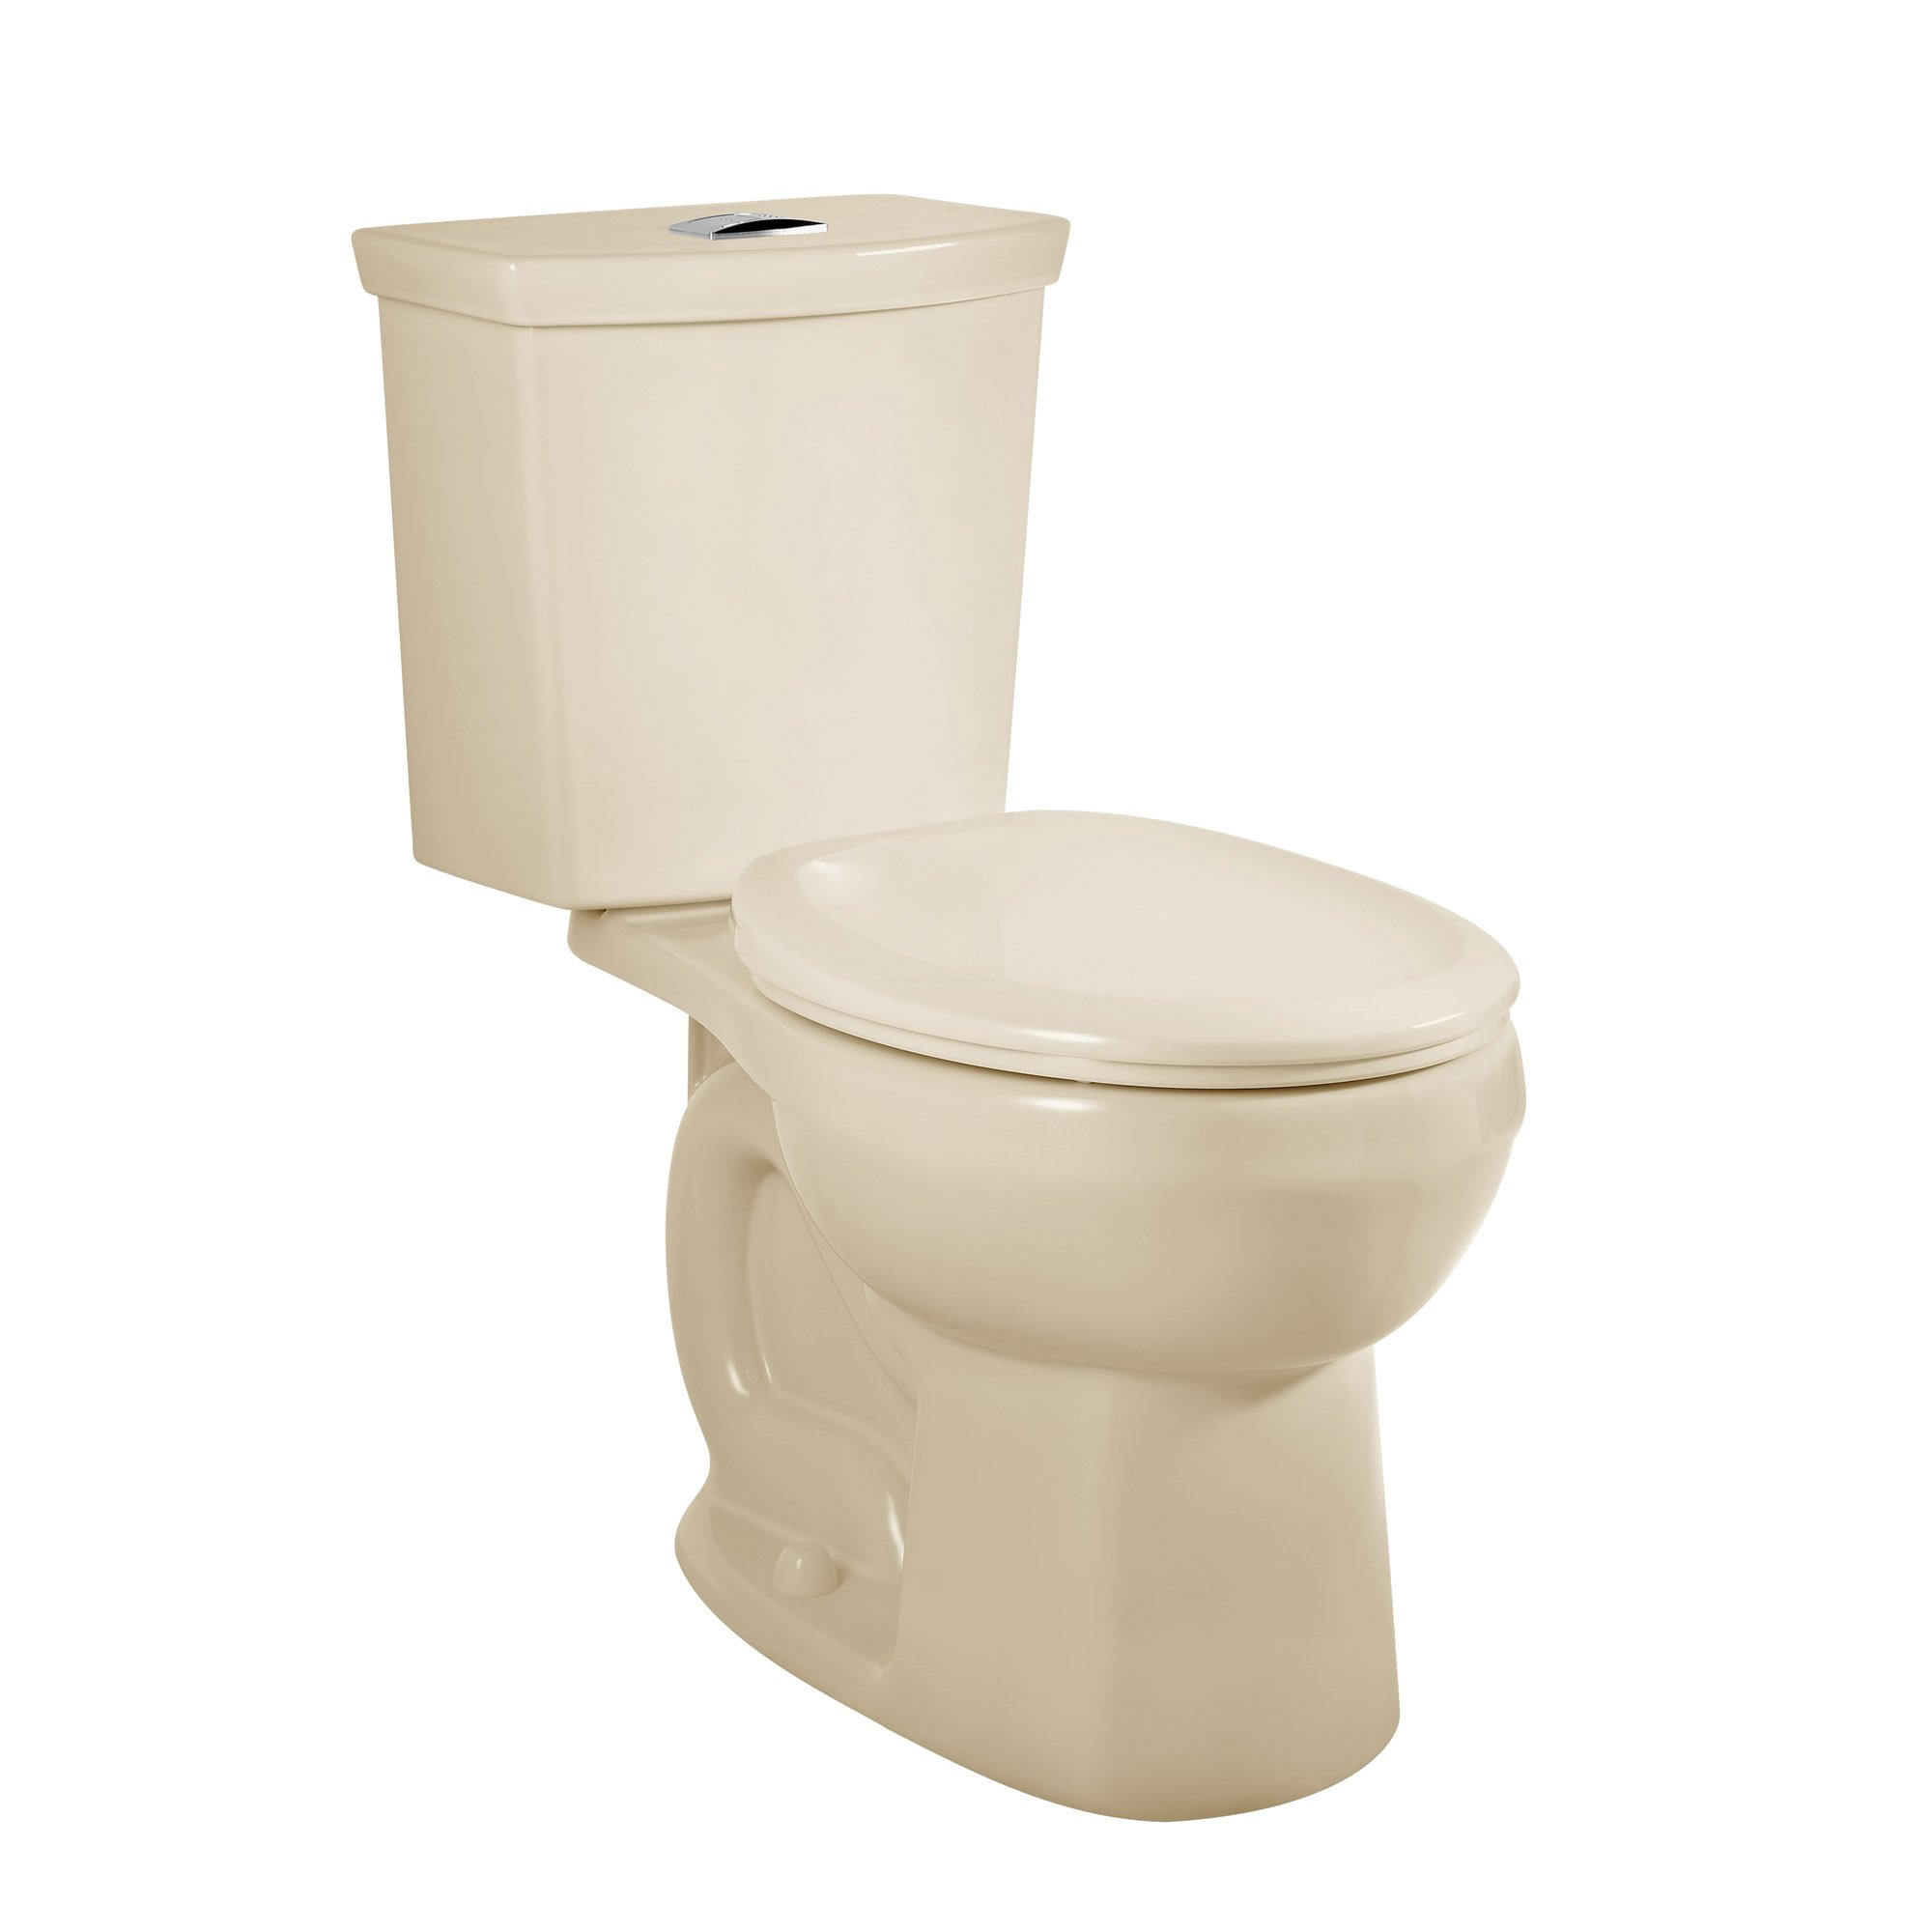 American Standard 2889518.021 H2Option Siphonic Dual Flush Normal Height Round Front Toilet with Liner, Bone, 2-Piece